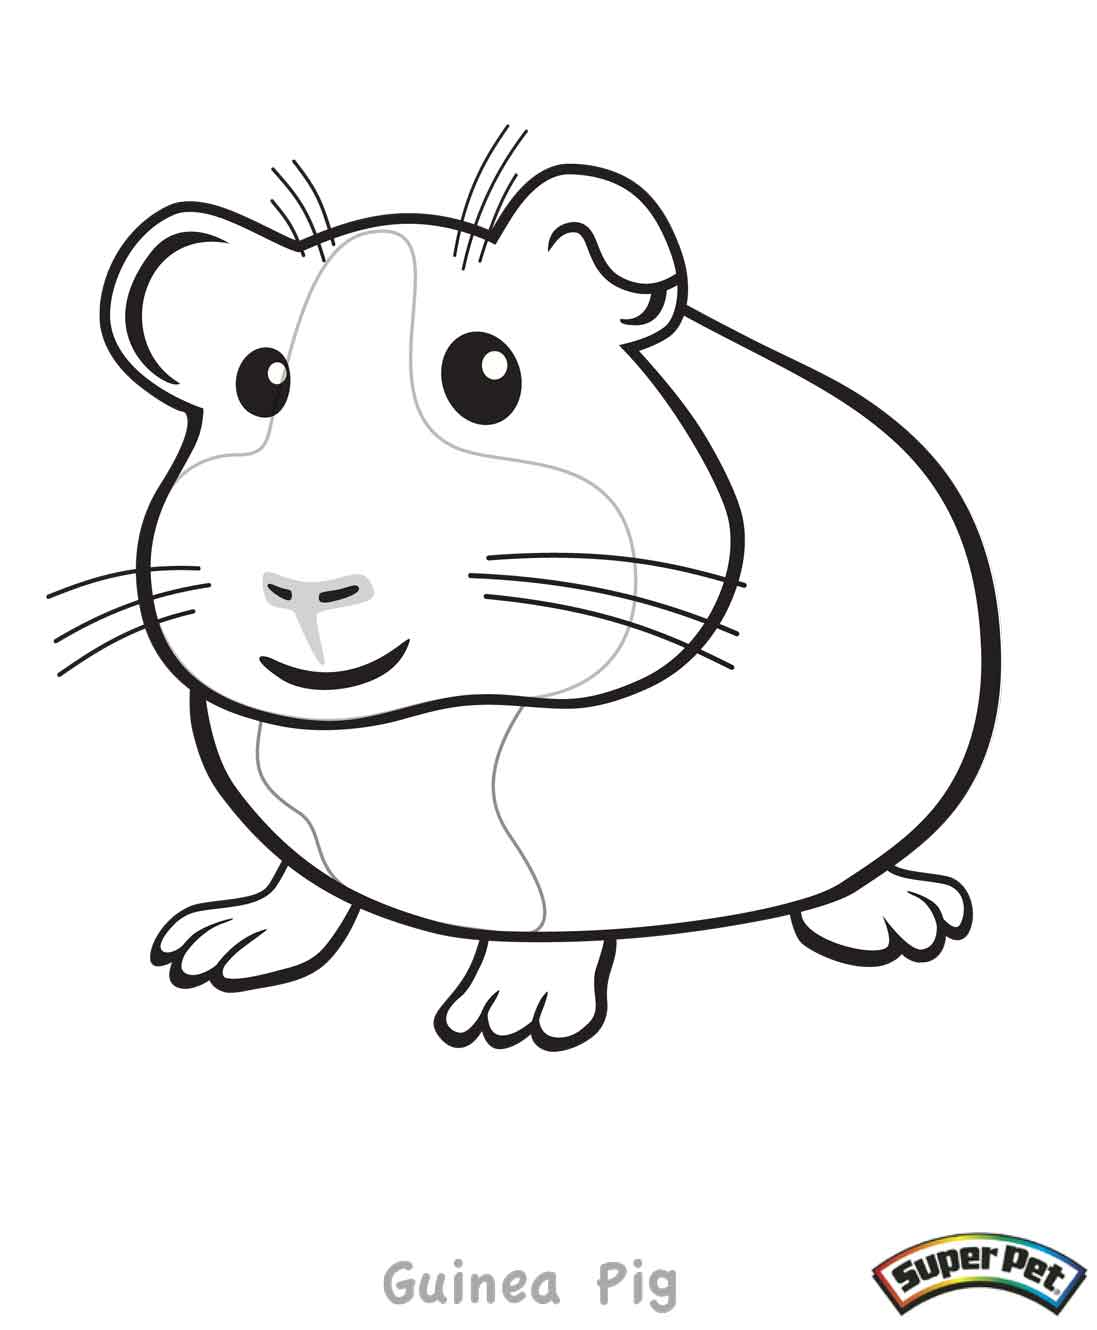 Ginnie pig coloring pages coloring home for Little critter coloring pages